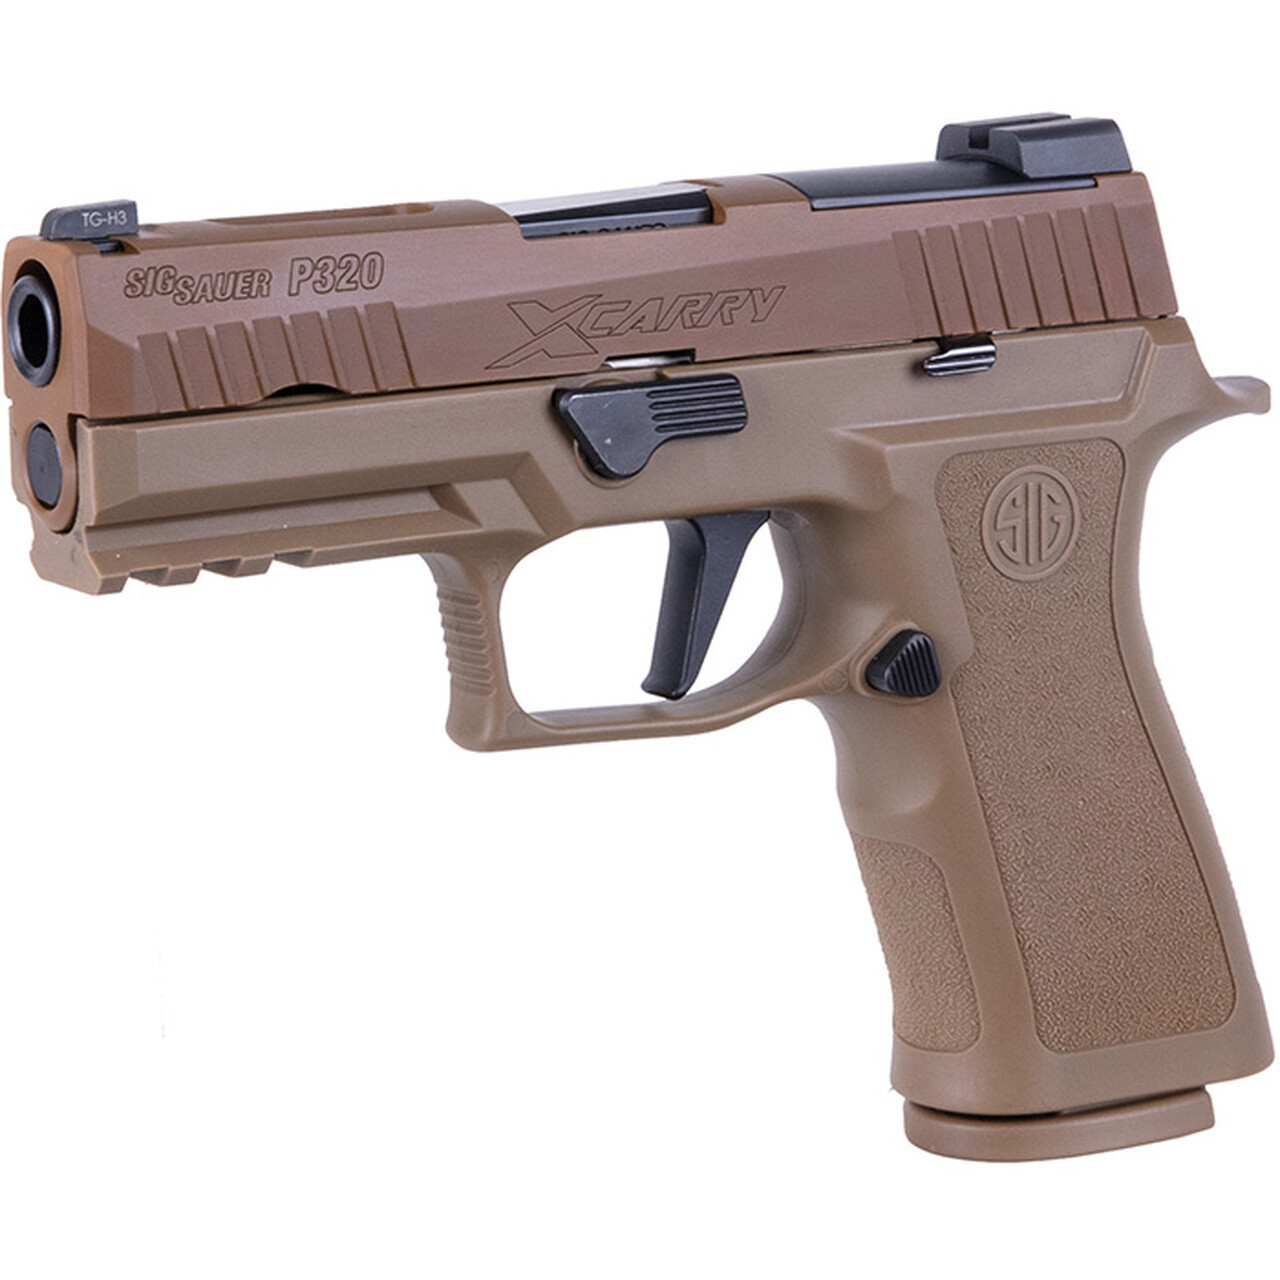 80% SIG Sauer P320 X-Carry 9MM 3.9 Inch 17 Round Coyote Xray Night Sight - Comes With P320 80% Insert MUP 1 - Pistol Case